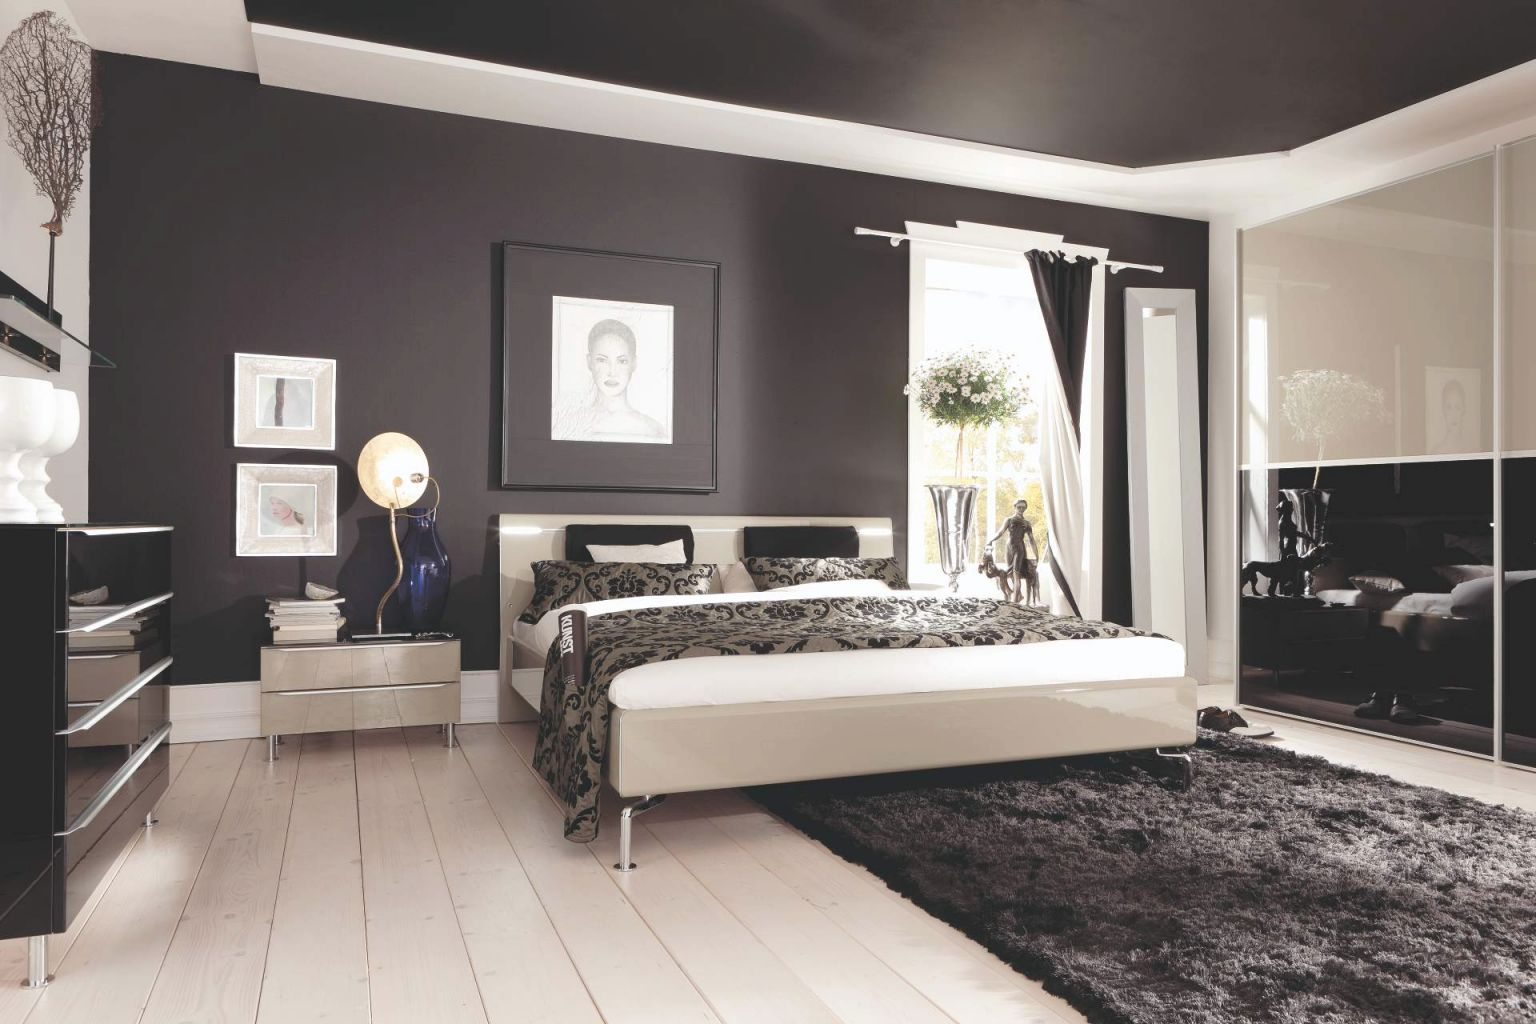 Top Great Bedroom Wall Designs Peacock Ideas Room Decor pertaining to Beautiful Master Bedroom Wall Decor Ideas